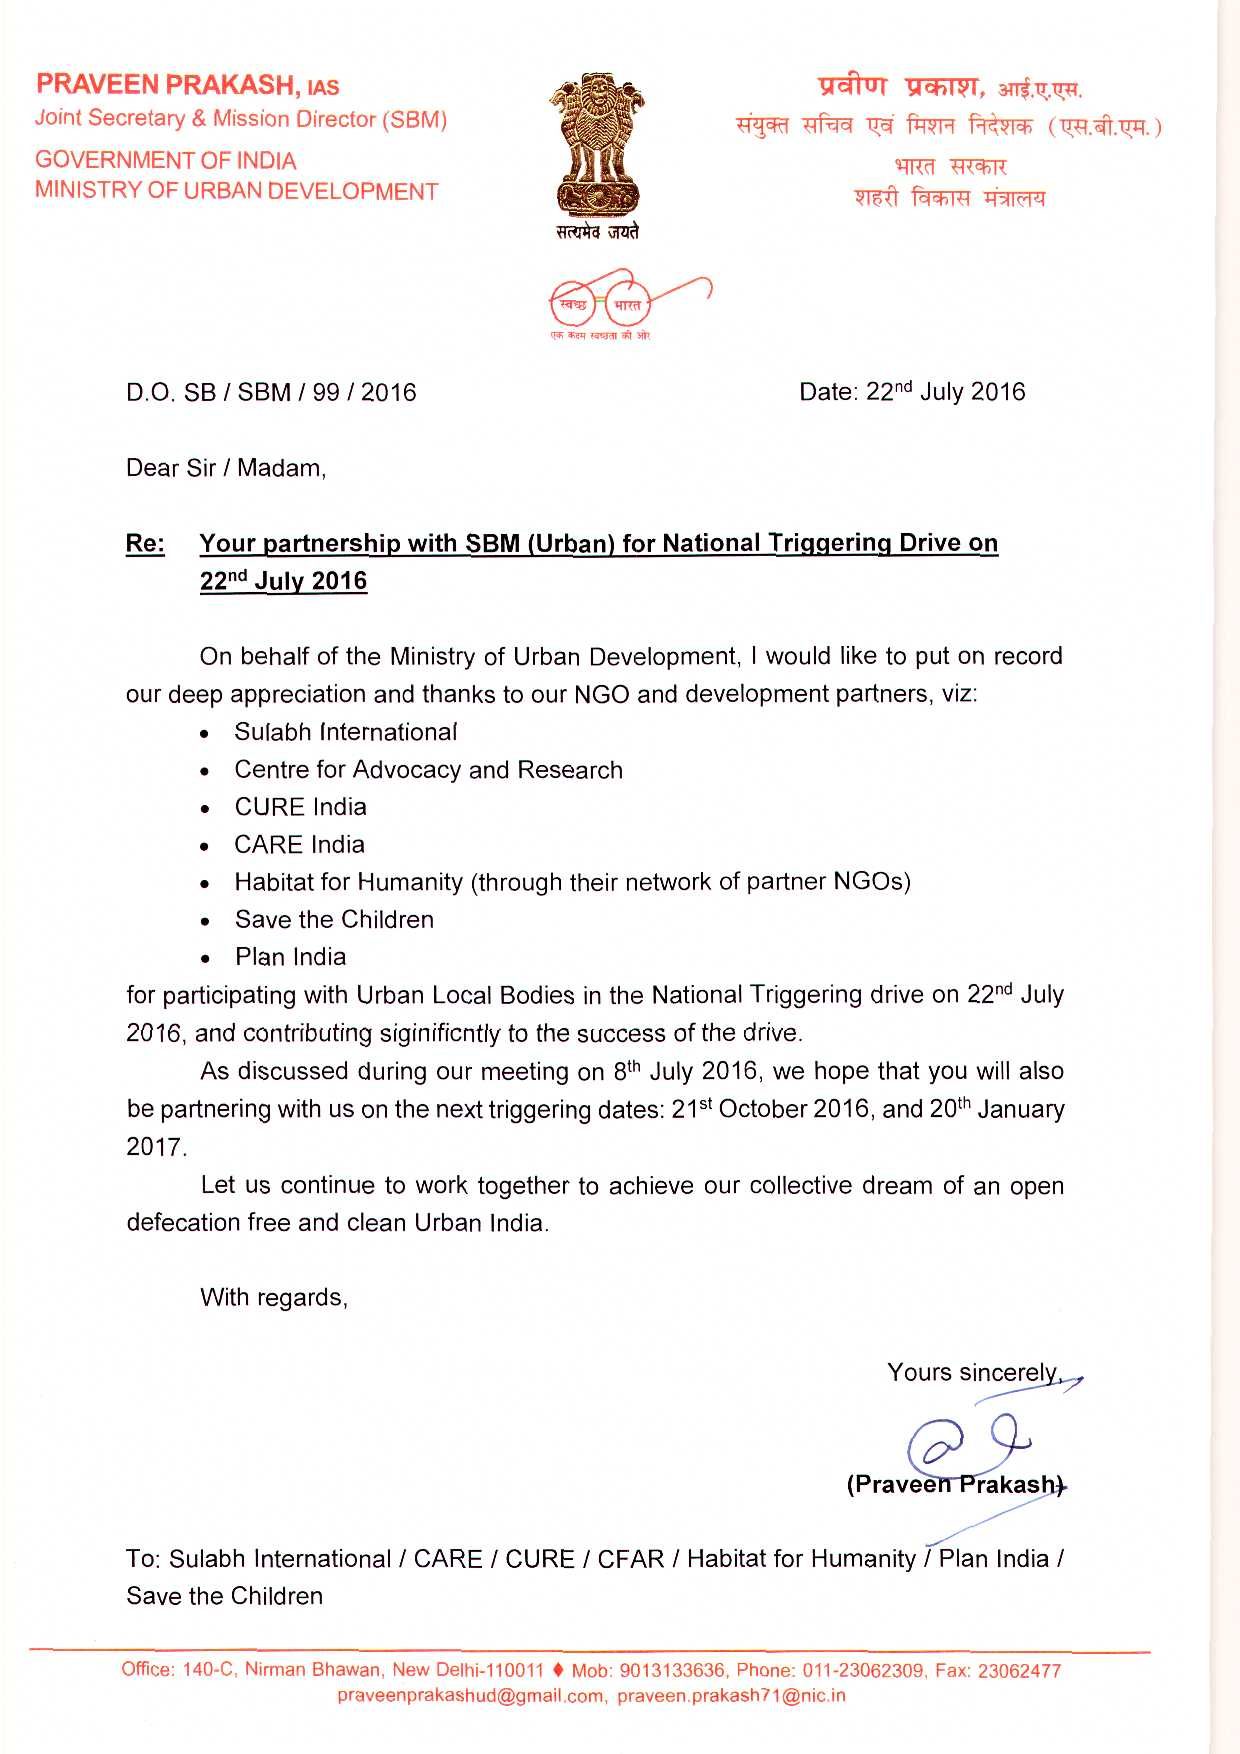 On July 22, 2016 CFAR received Letter of Appreciation from Ministry of Urban Development, Government of India for Partnership with SBM (Urban) for National Triggering Drive.